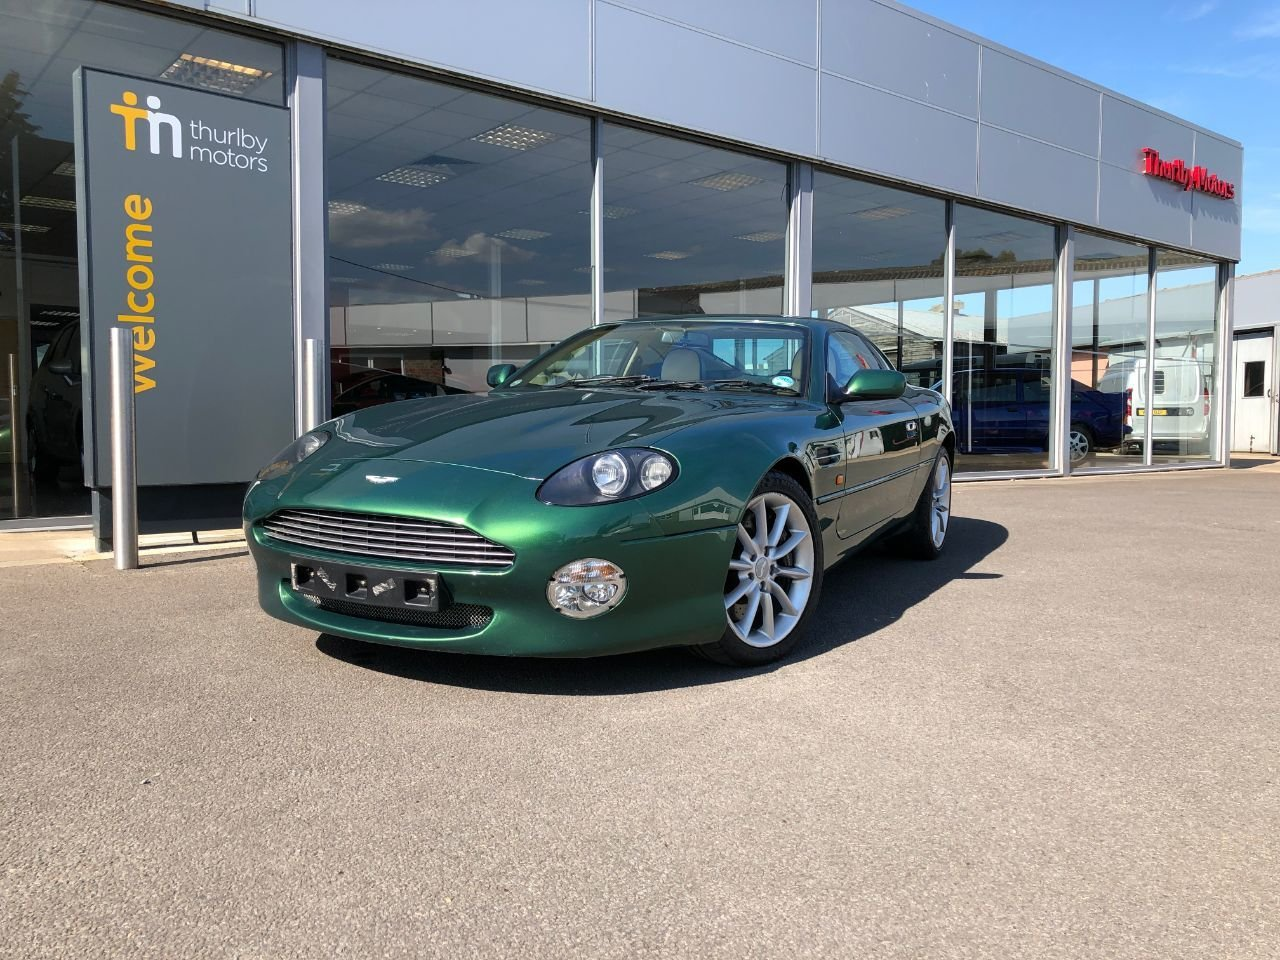 2000 Aston Martin DB7 Vantage For Sale (picture 1 of 6)